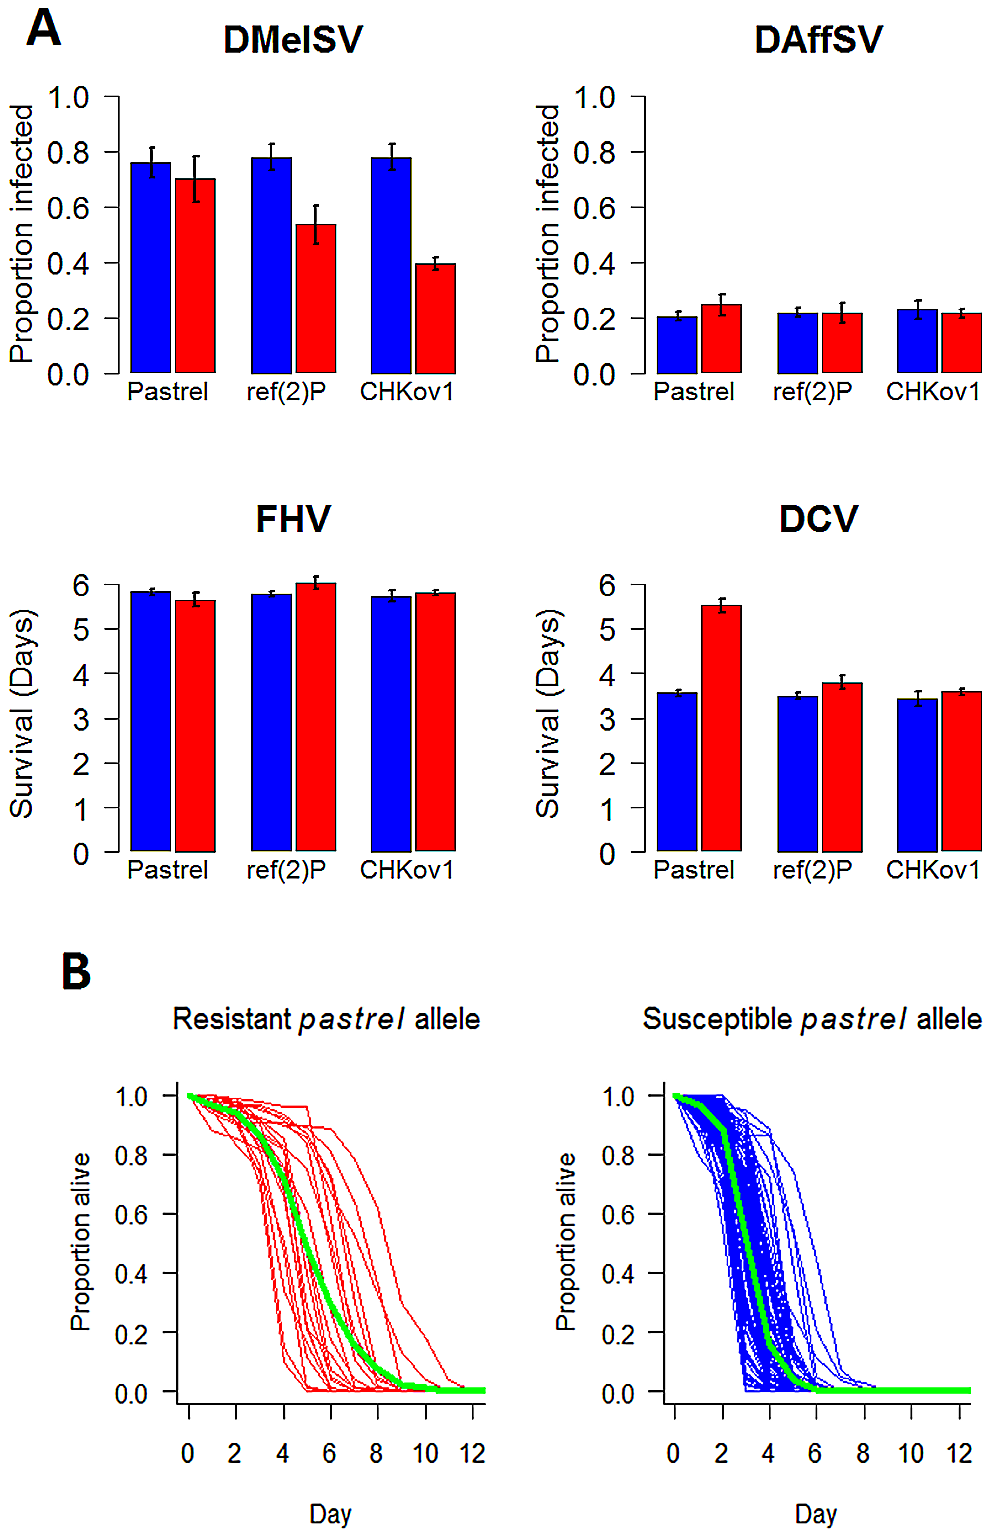 The effect of the three polymorphisms affecting susceptibility on four different viruses.